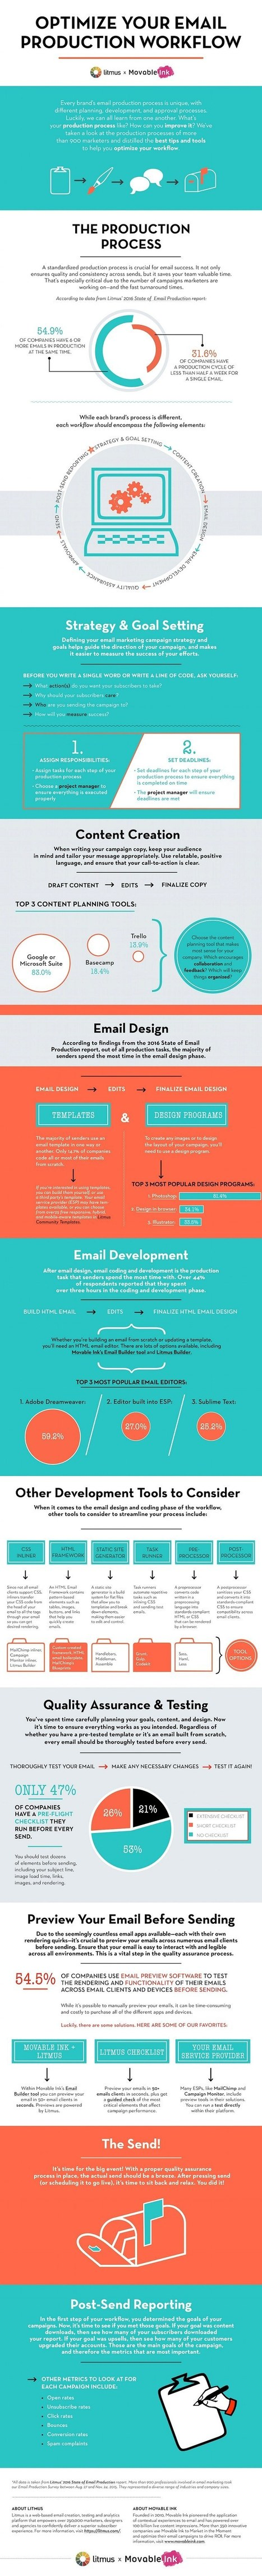 How to Optimize Your Email Production Workflow [Infographic] | Inbound marketing, social and SEO | Scoop.it